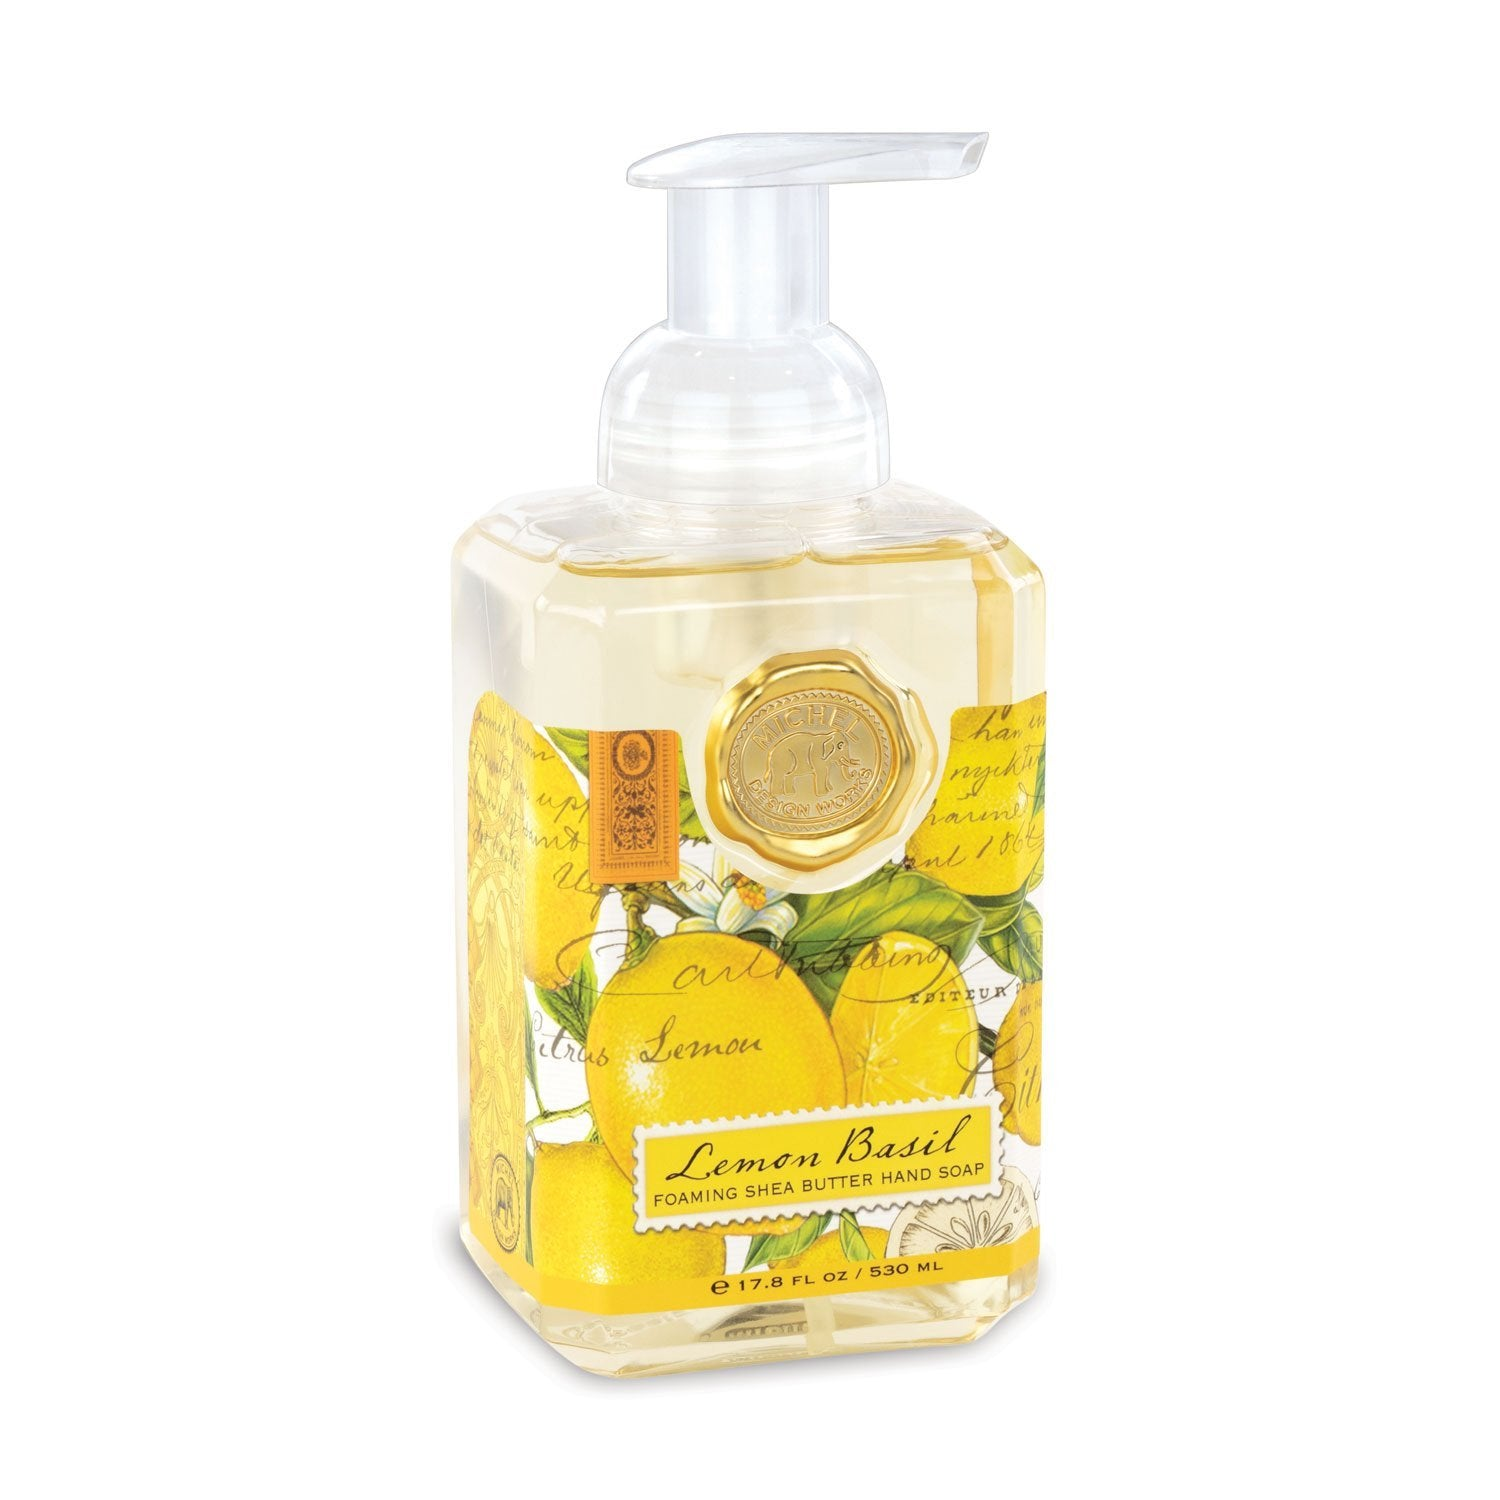 Foaming Hand Soap - Lemon Basil